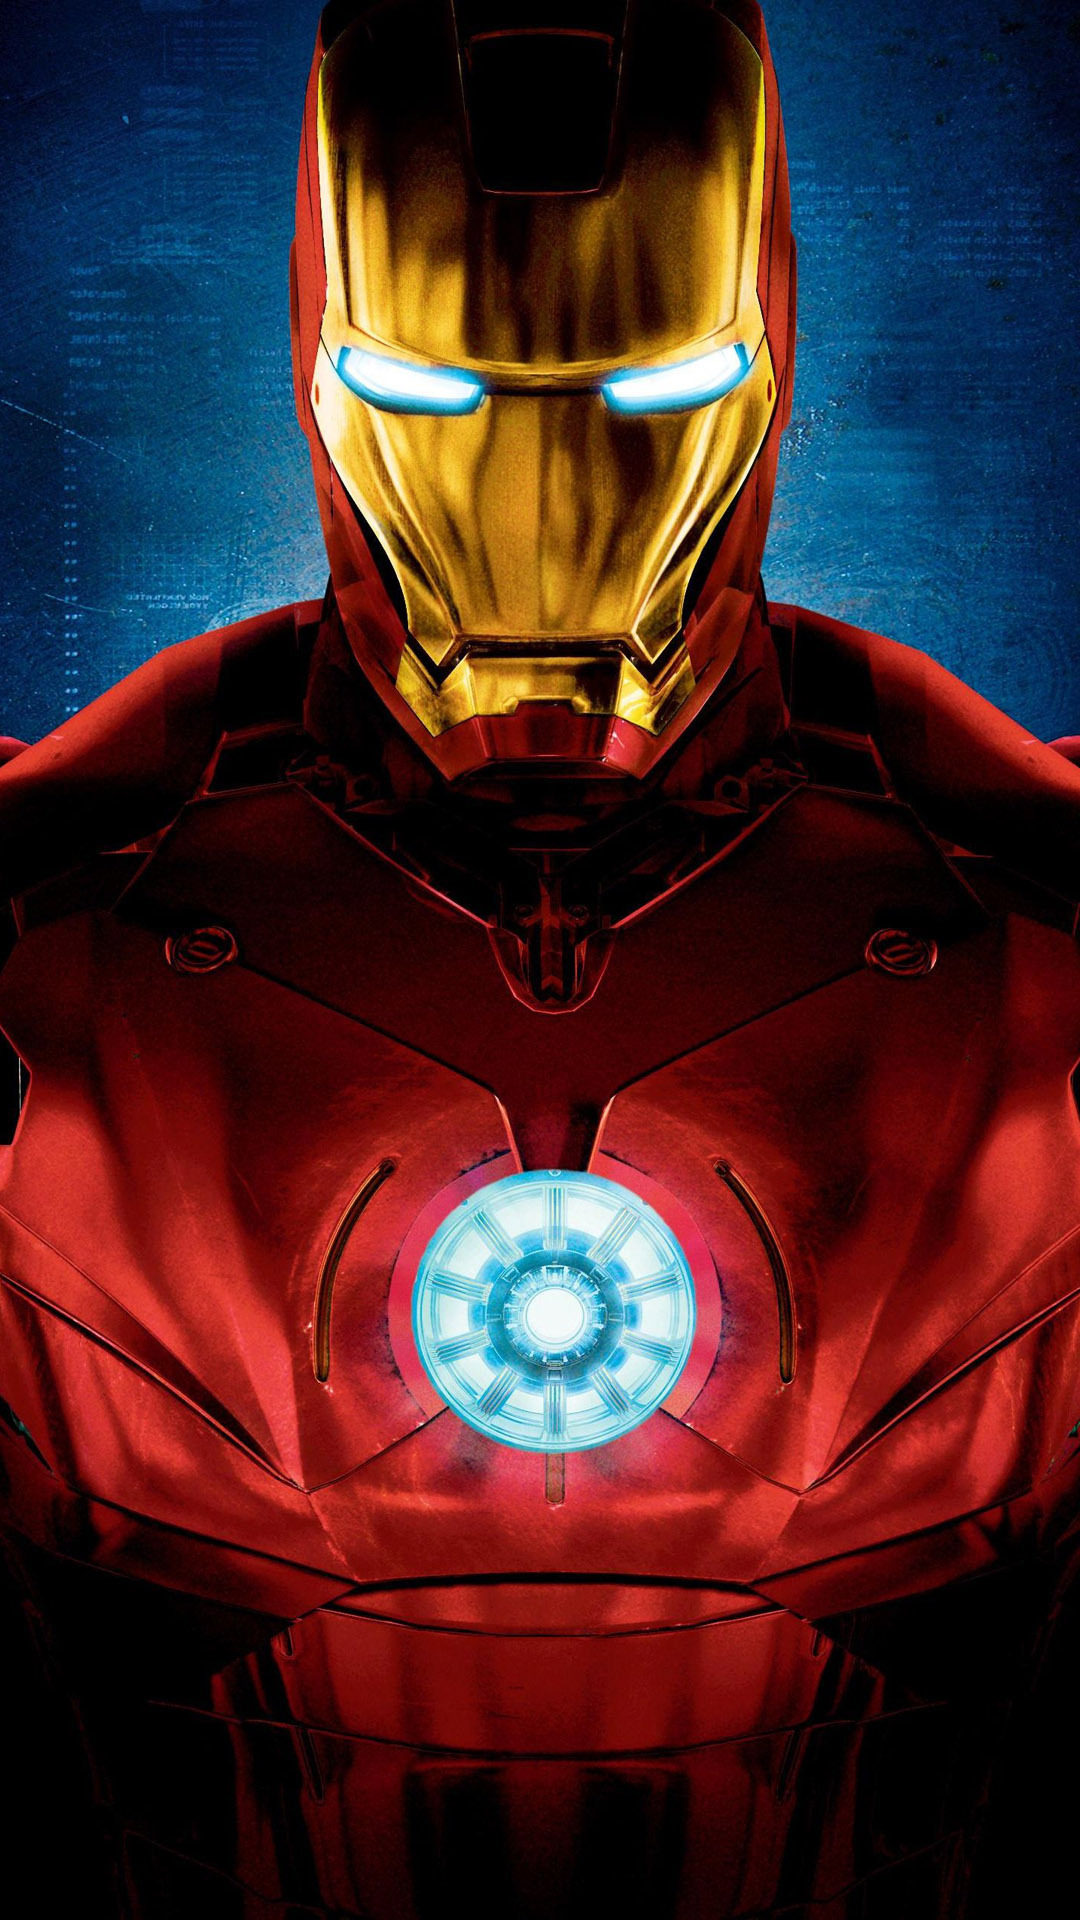 Iron man suit   Best HTC One M9 wallpapers download 1080x1920